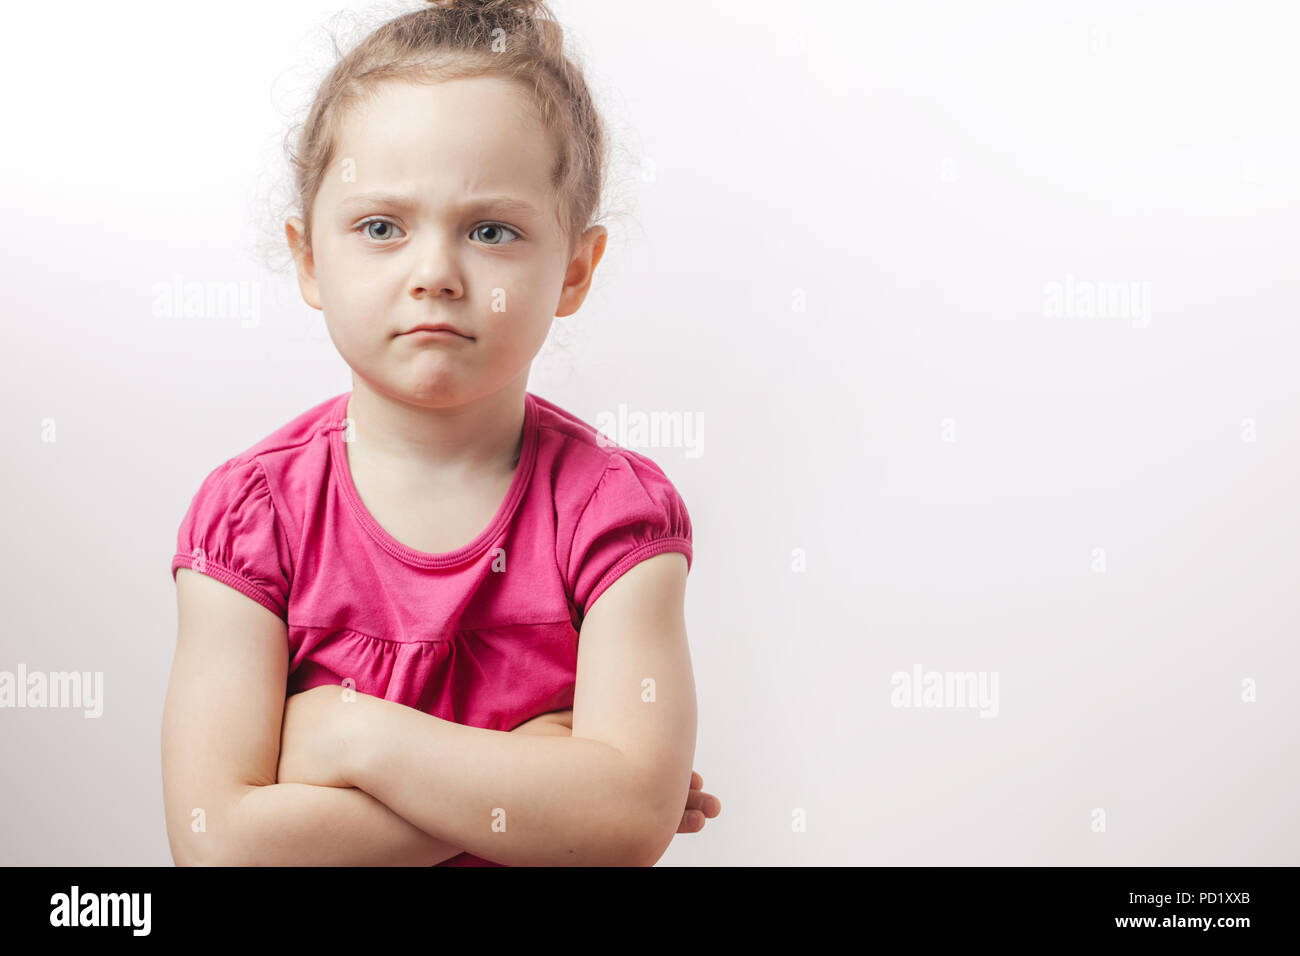 unhappy beautiful ginger girl with crossed arms is expressing disagreement. body language. caprice - Stock Image